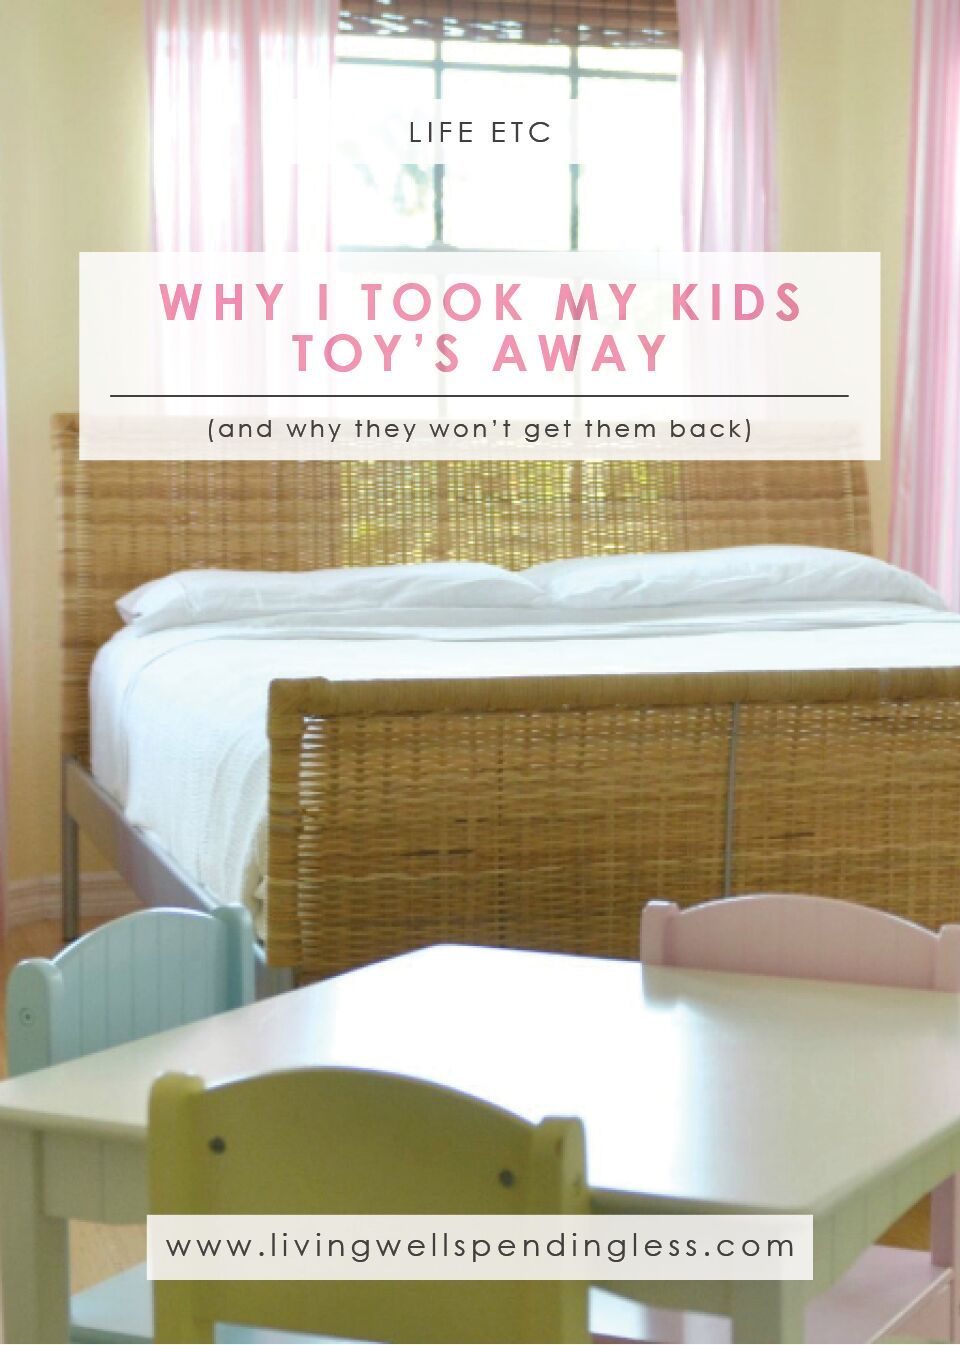 What to Do with Too Many Toys | Behavior Management | Raising Kids | Disciplining Children | Behavior Management | Less Toys Better | Good Manners | Good Life | Motherhood | Family Life | Child Management | Better Childhood | Raising Happy Kids | Parenting | Parental Advice